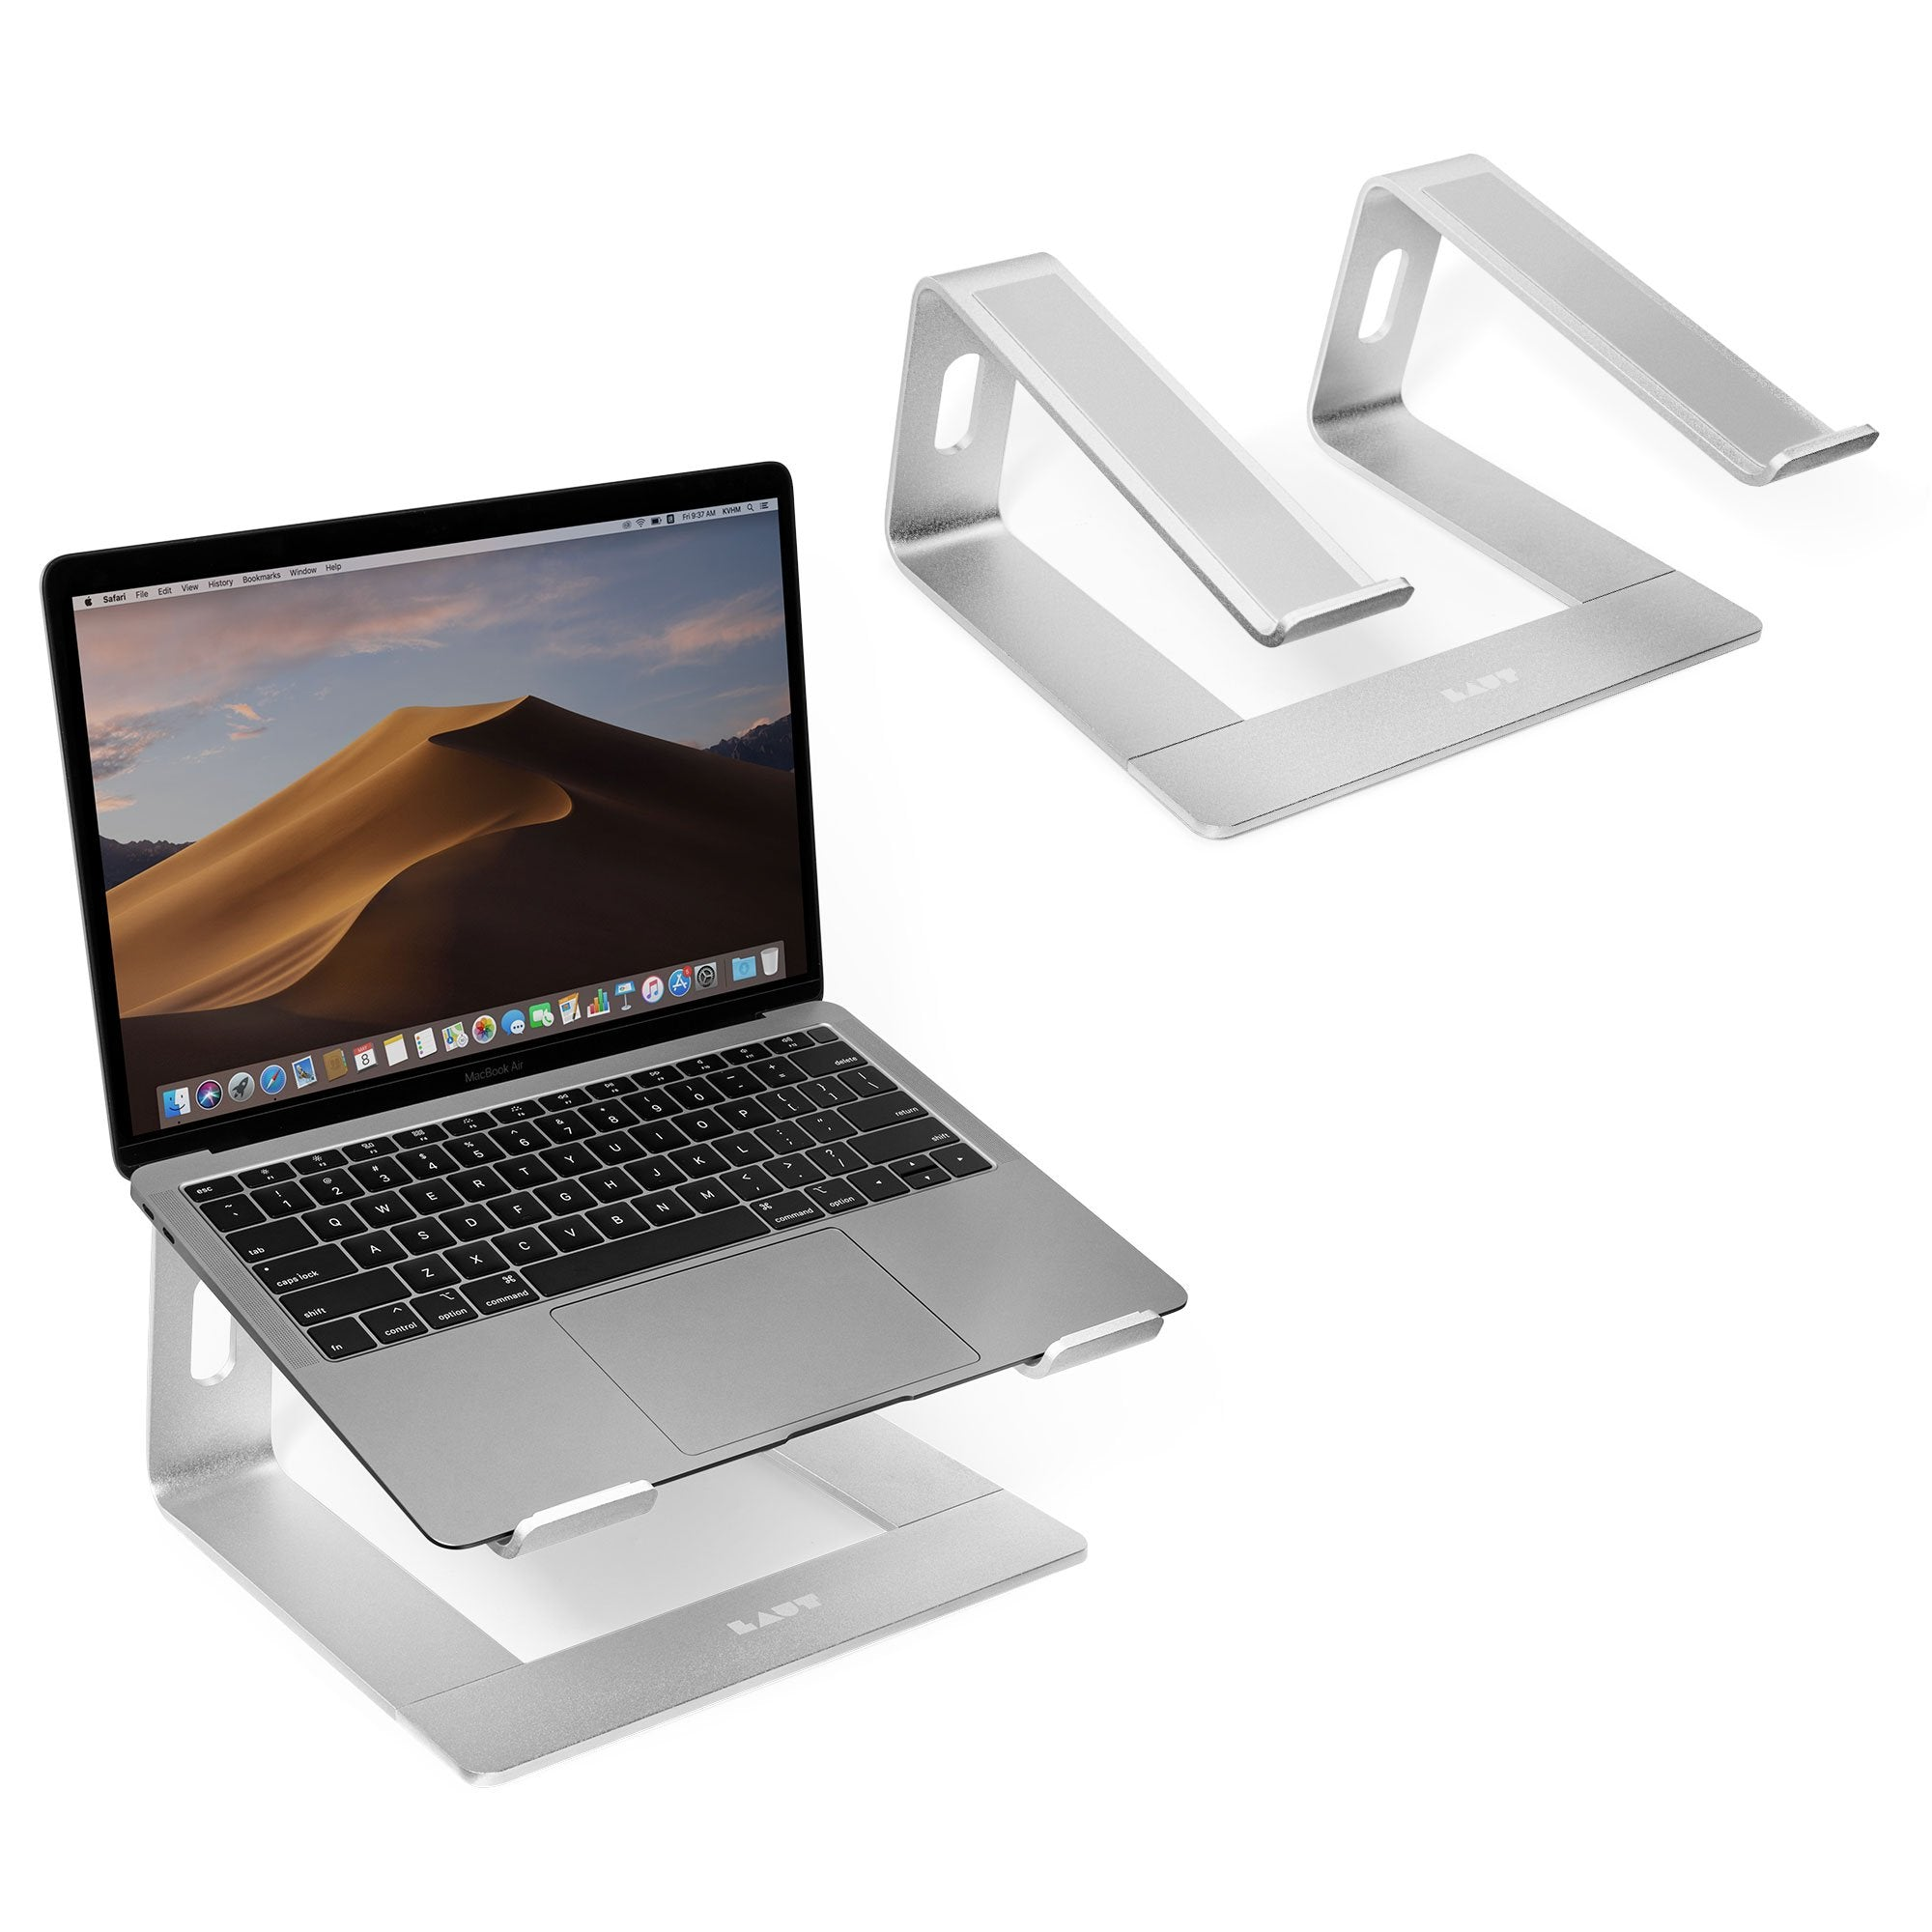 WorkStation Pro - Laptop / Tablet Stand